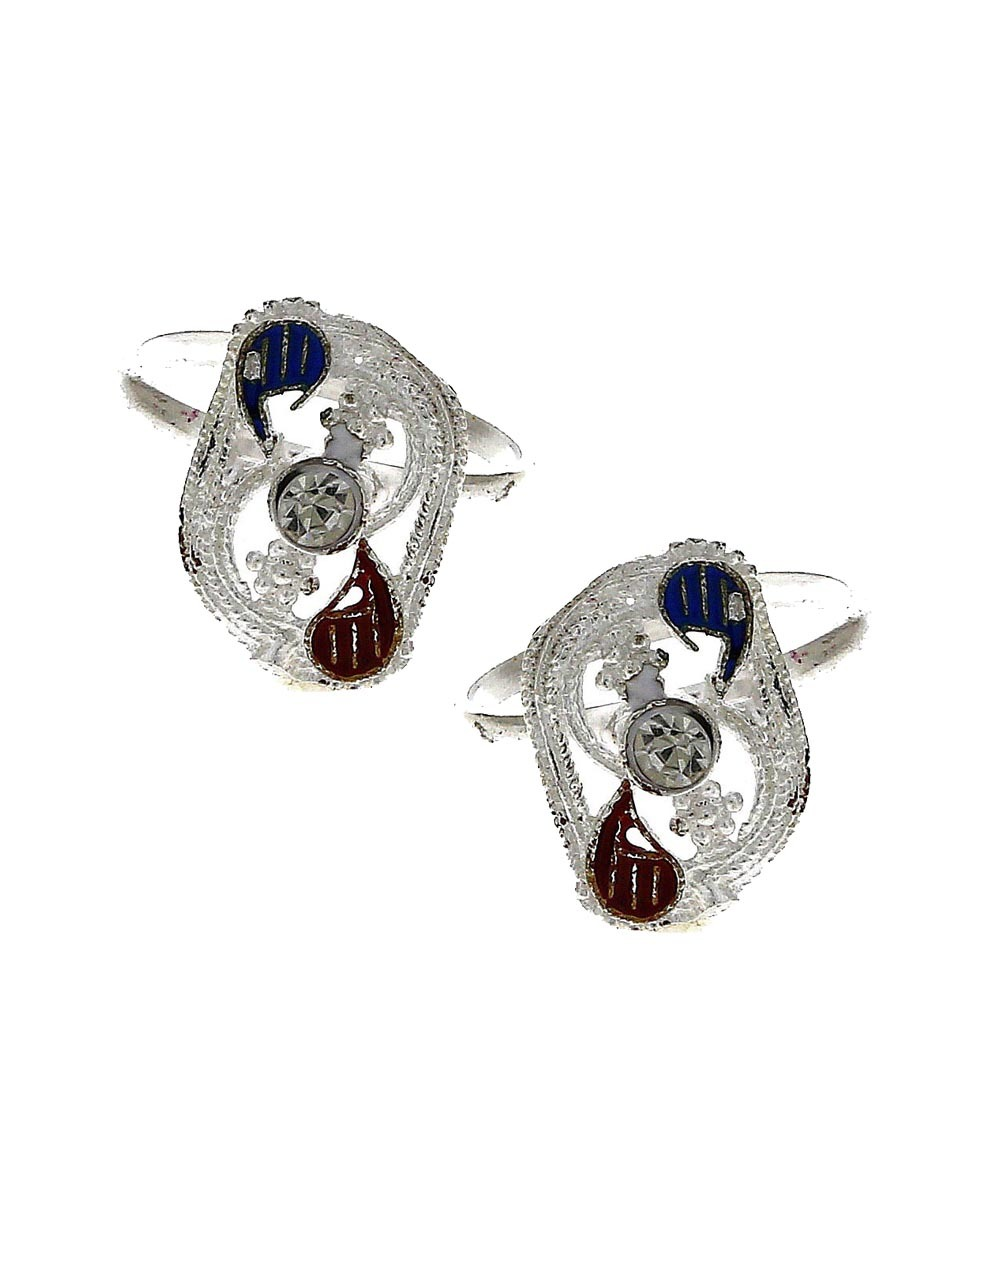 Attractive blue and maroon red stone silver finish bichhudi for woman